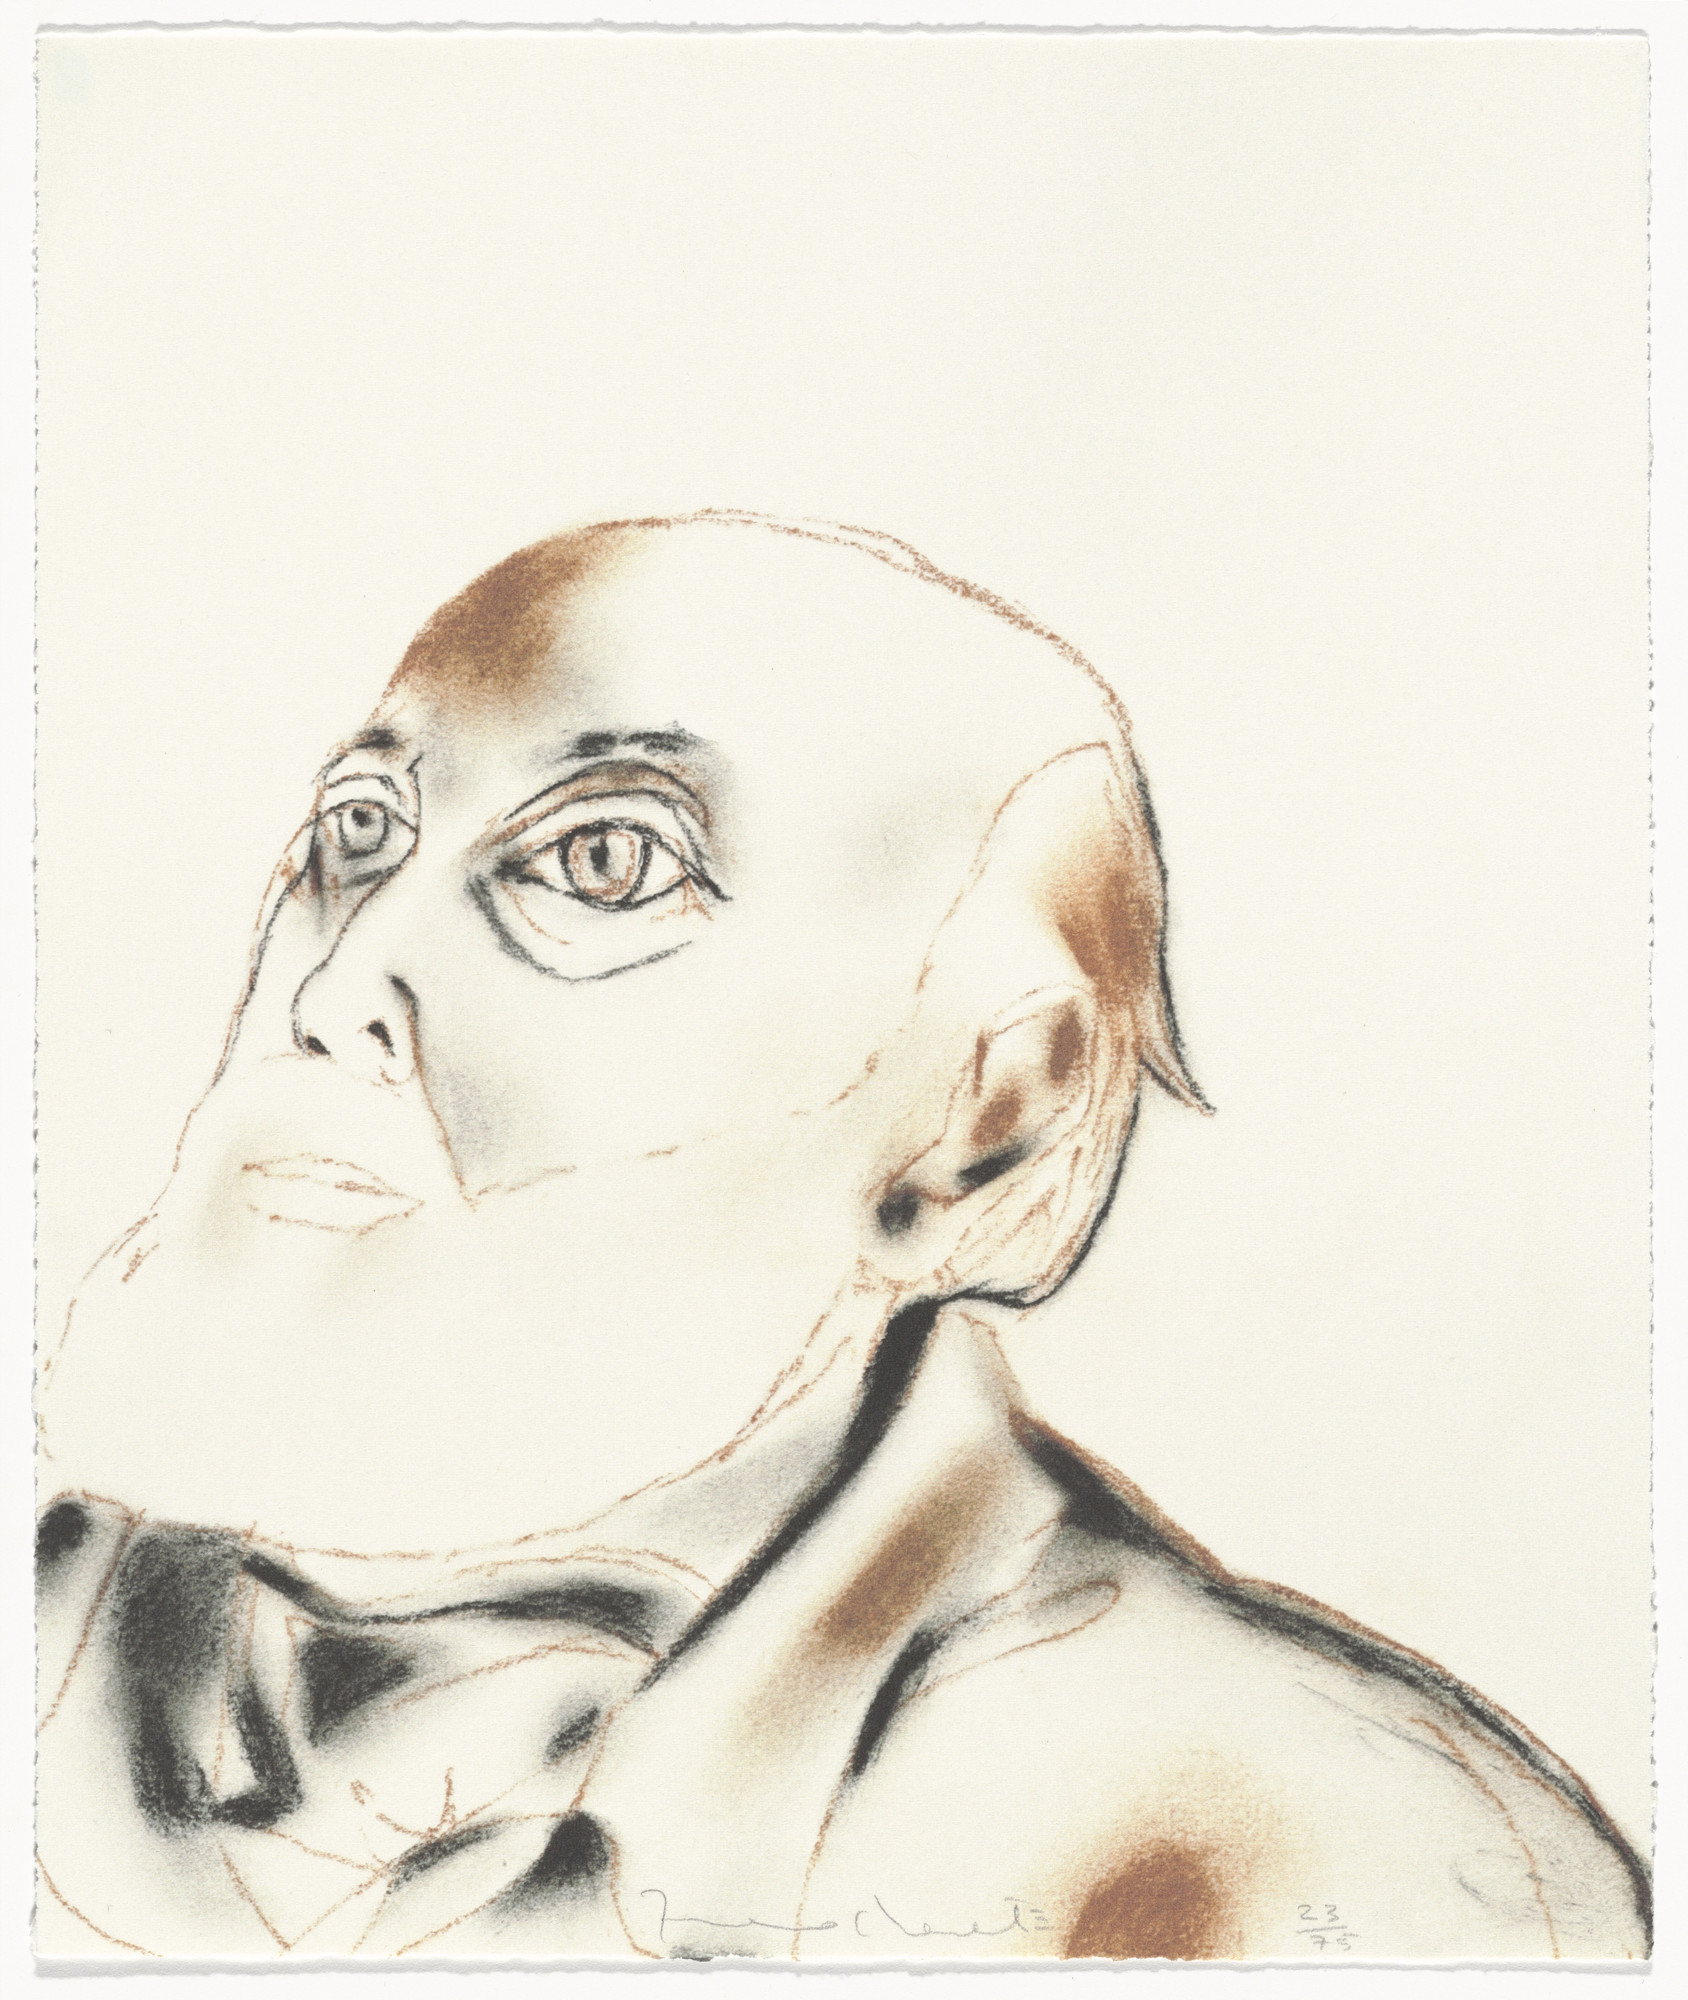 Francesco Clemente. Untitled from The Geldzahler Portfolio. 1997, published 1998